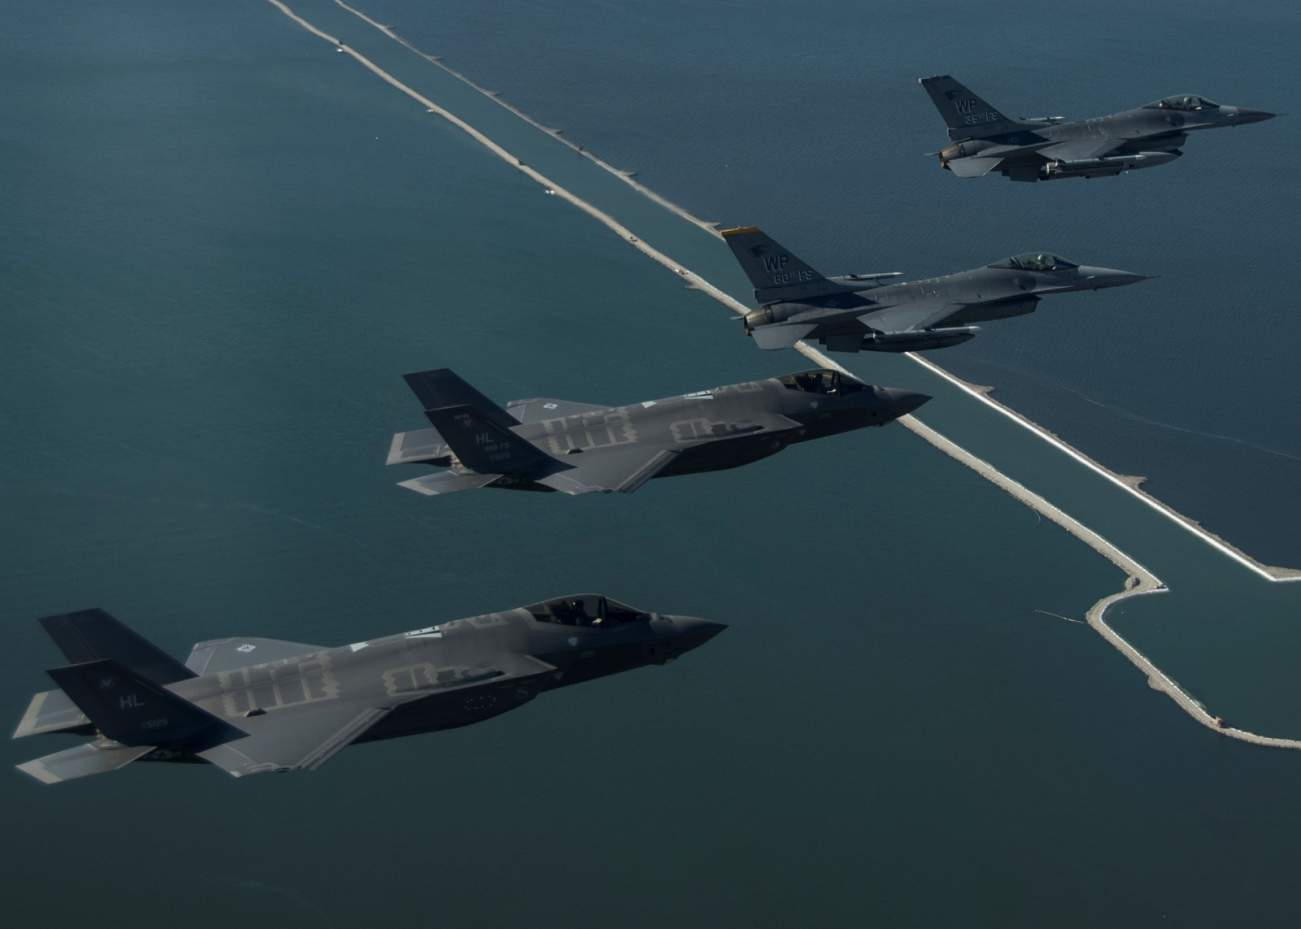 The U.S. Air Force Has Begun Prototyping Its F-35 Stealth Fighter Replacement